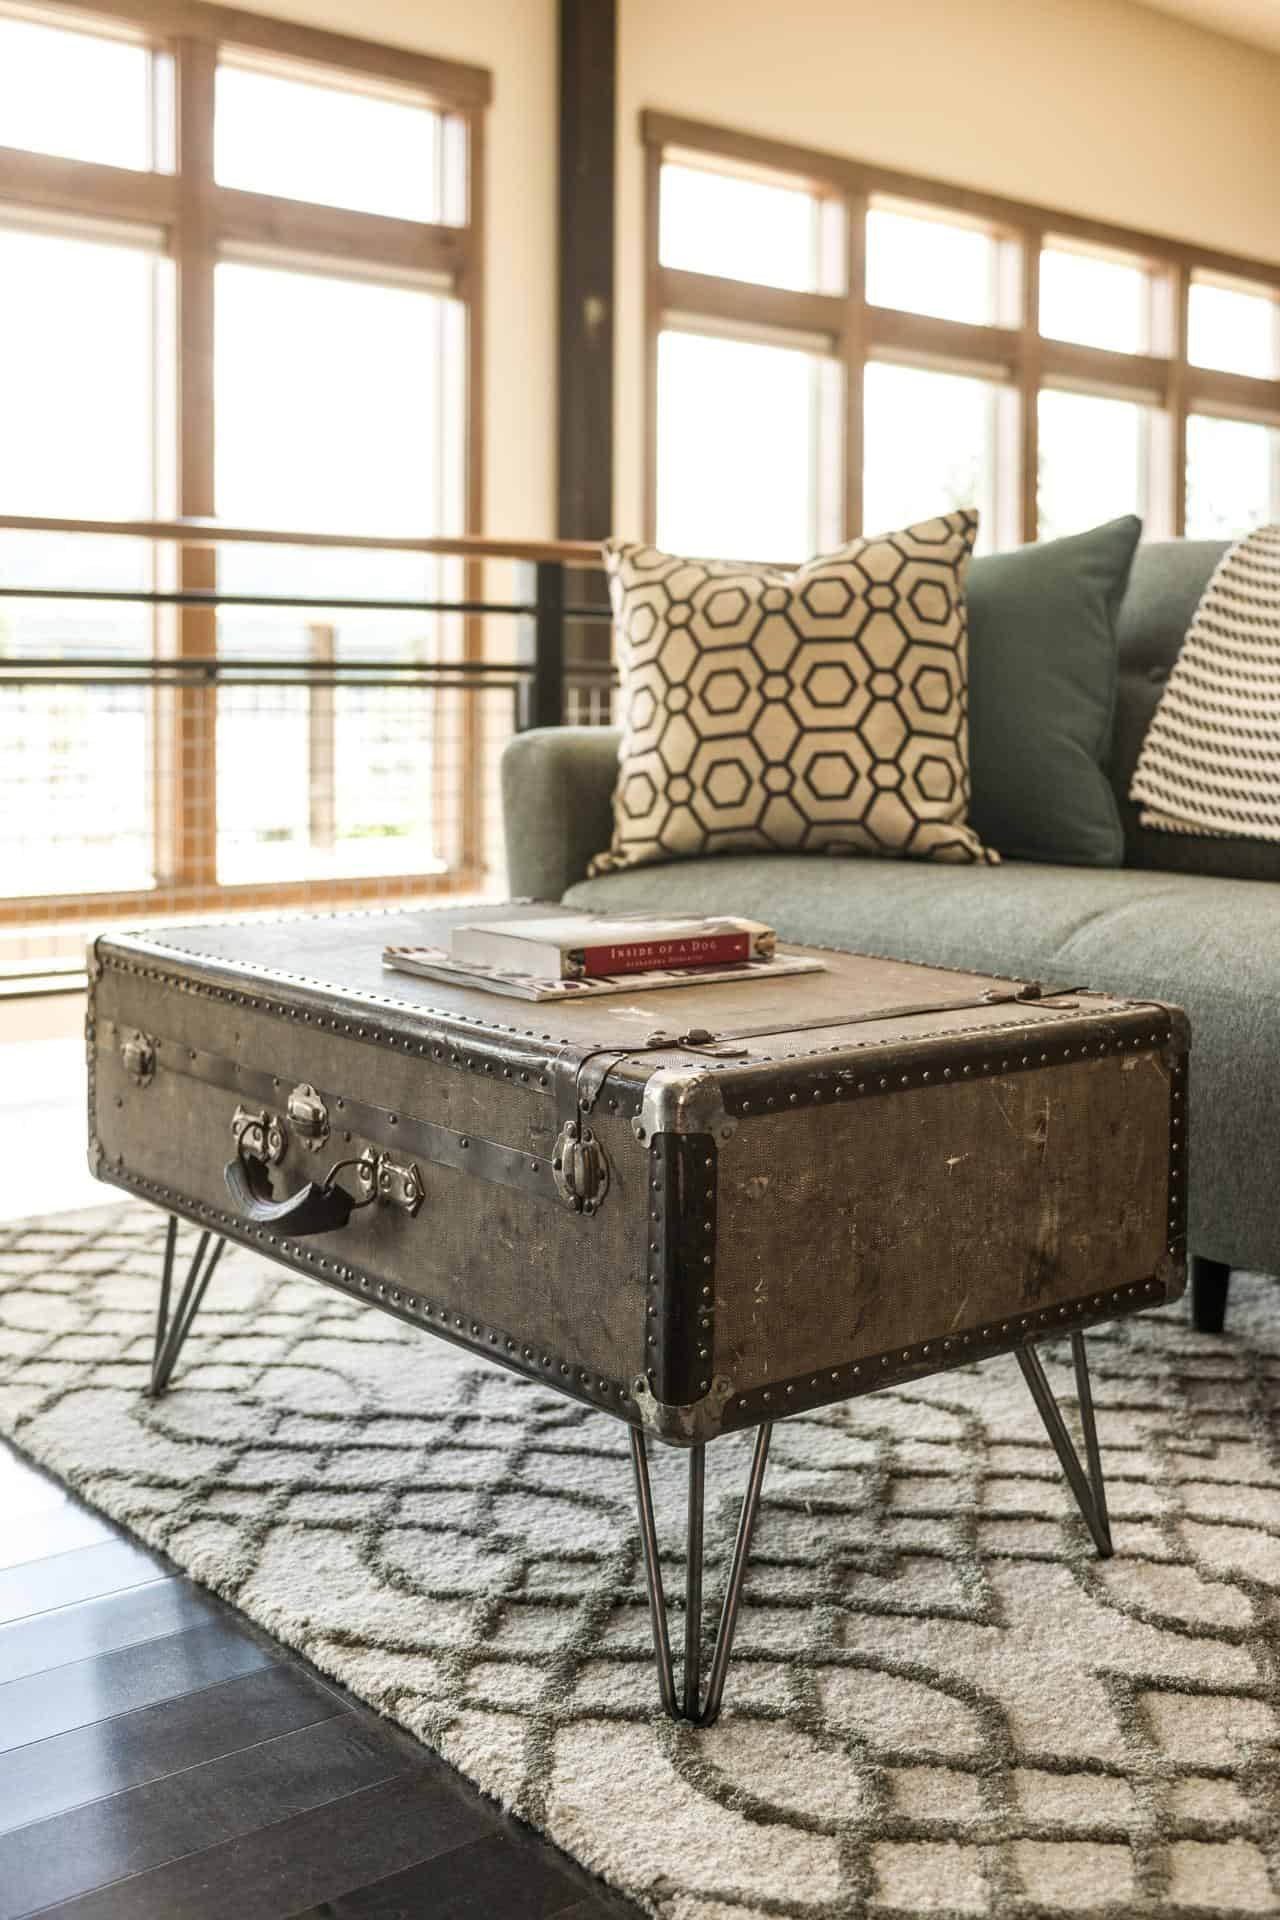 Large industrial era suitcase coffee table